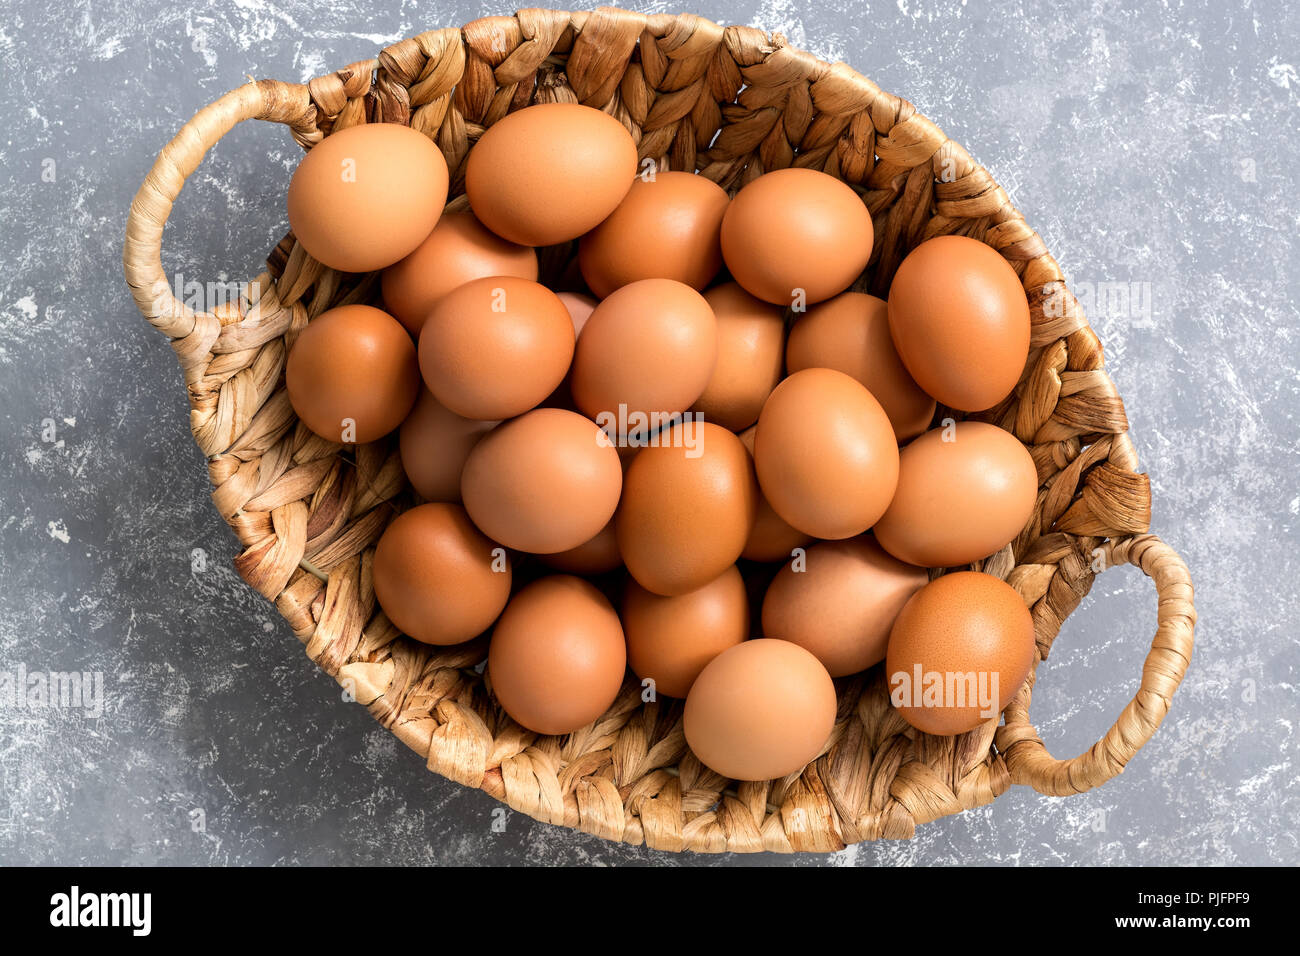 Close-up of a brown chicken egg in a basket on a gray background. Top view,flat lay Stock Photo